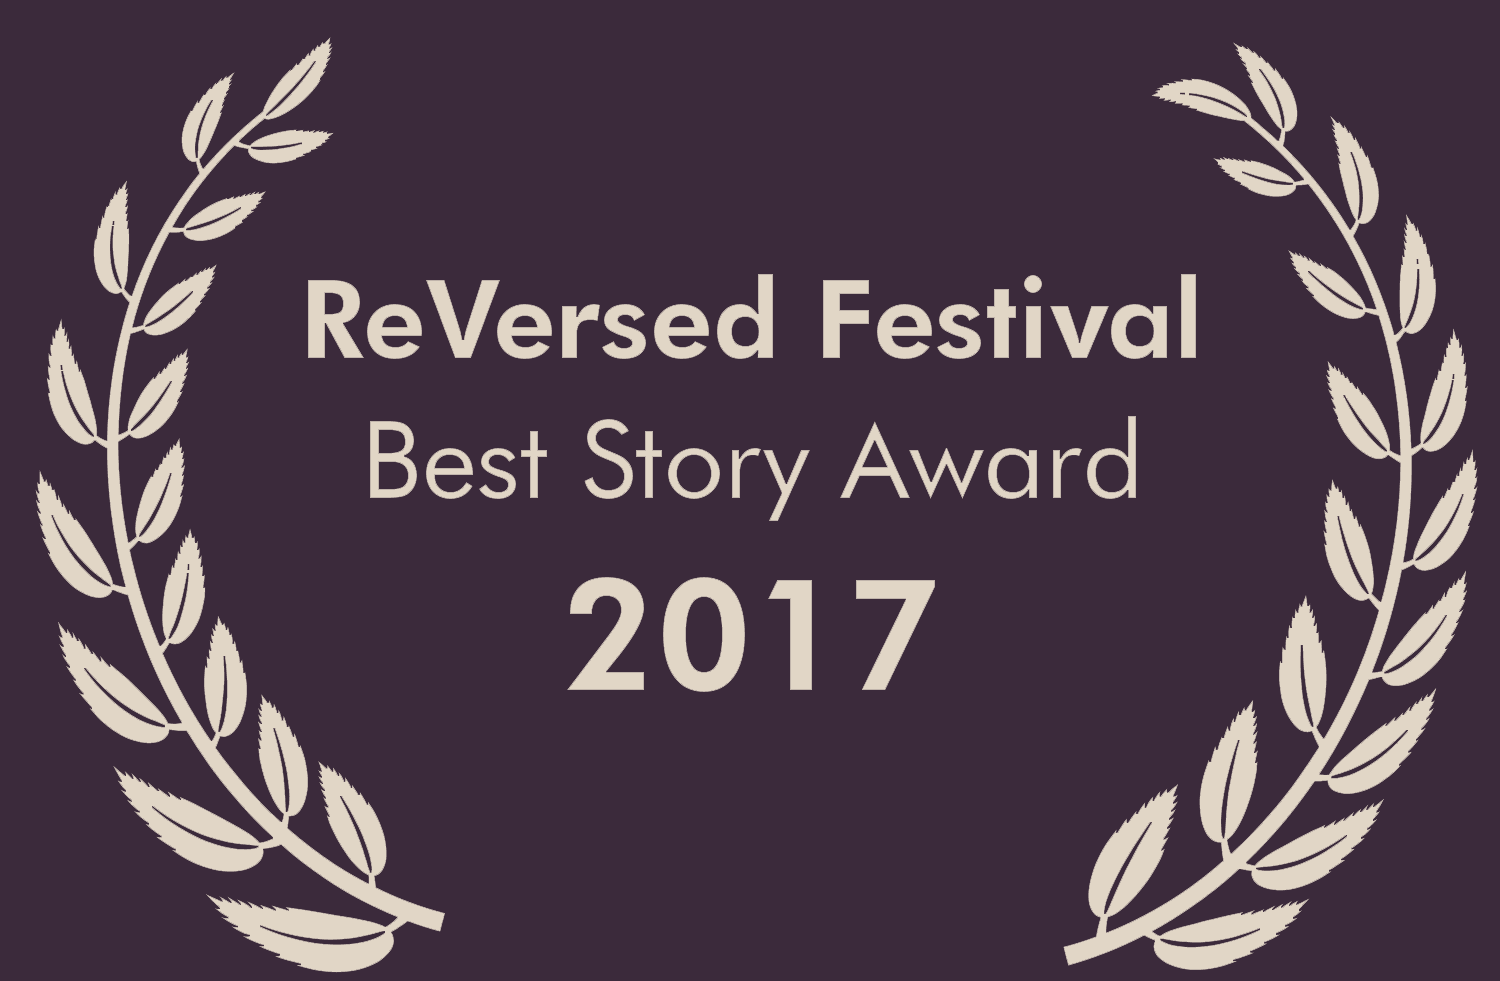 ReVersed Festival 2017 Best Story Award